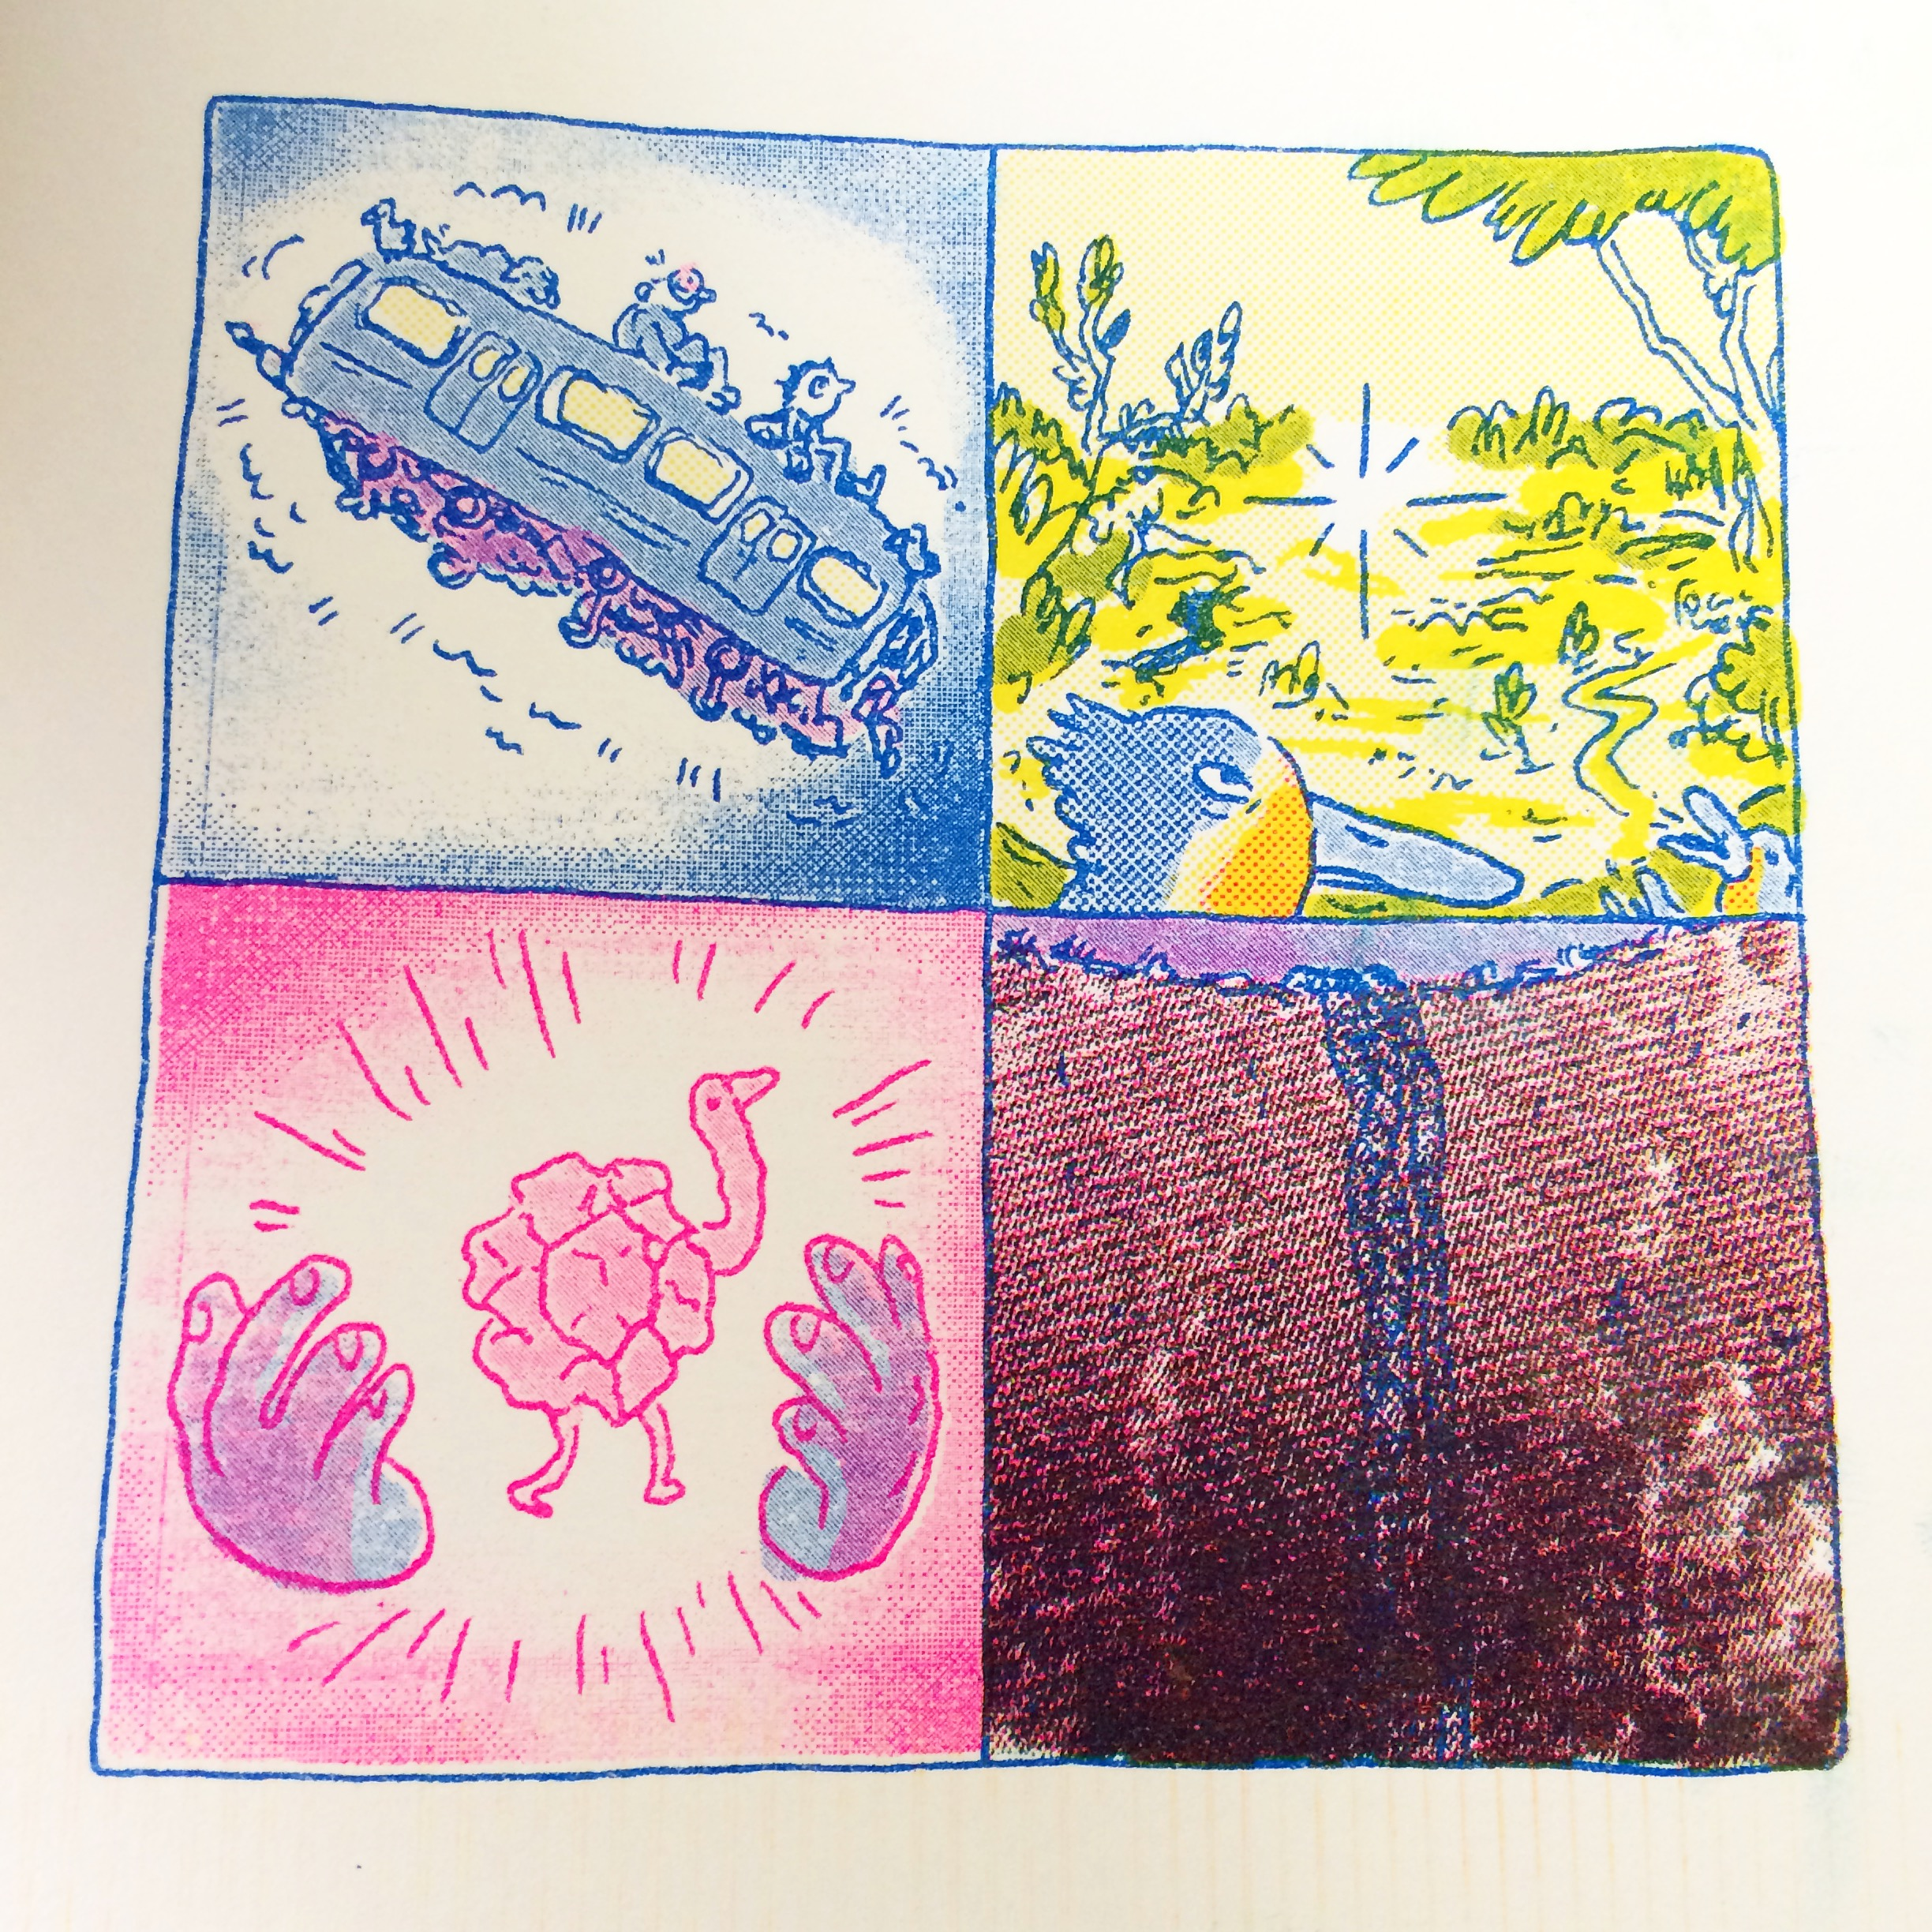 Glom Press is a risograph printer from Melbourne in Australia run by Michael Hawkins and Marc Pearson.They will be selling comics and risograph prints. Find out more here.